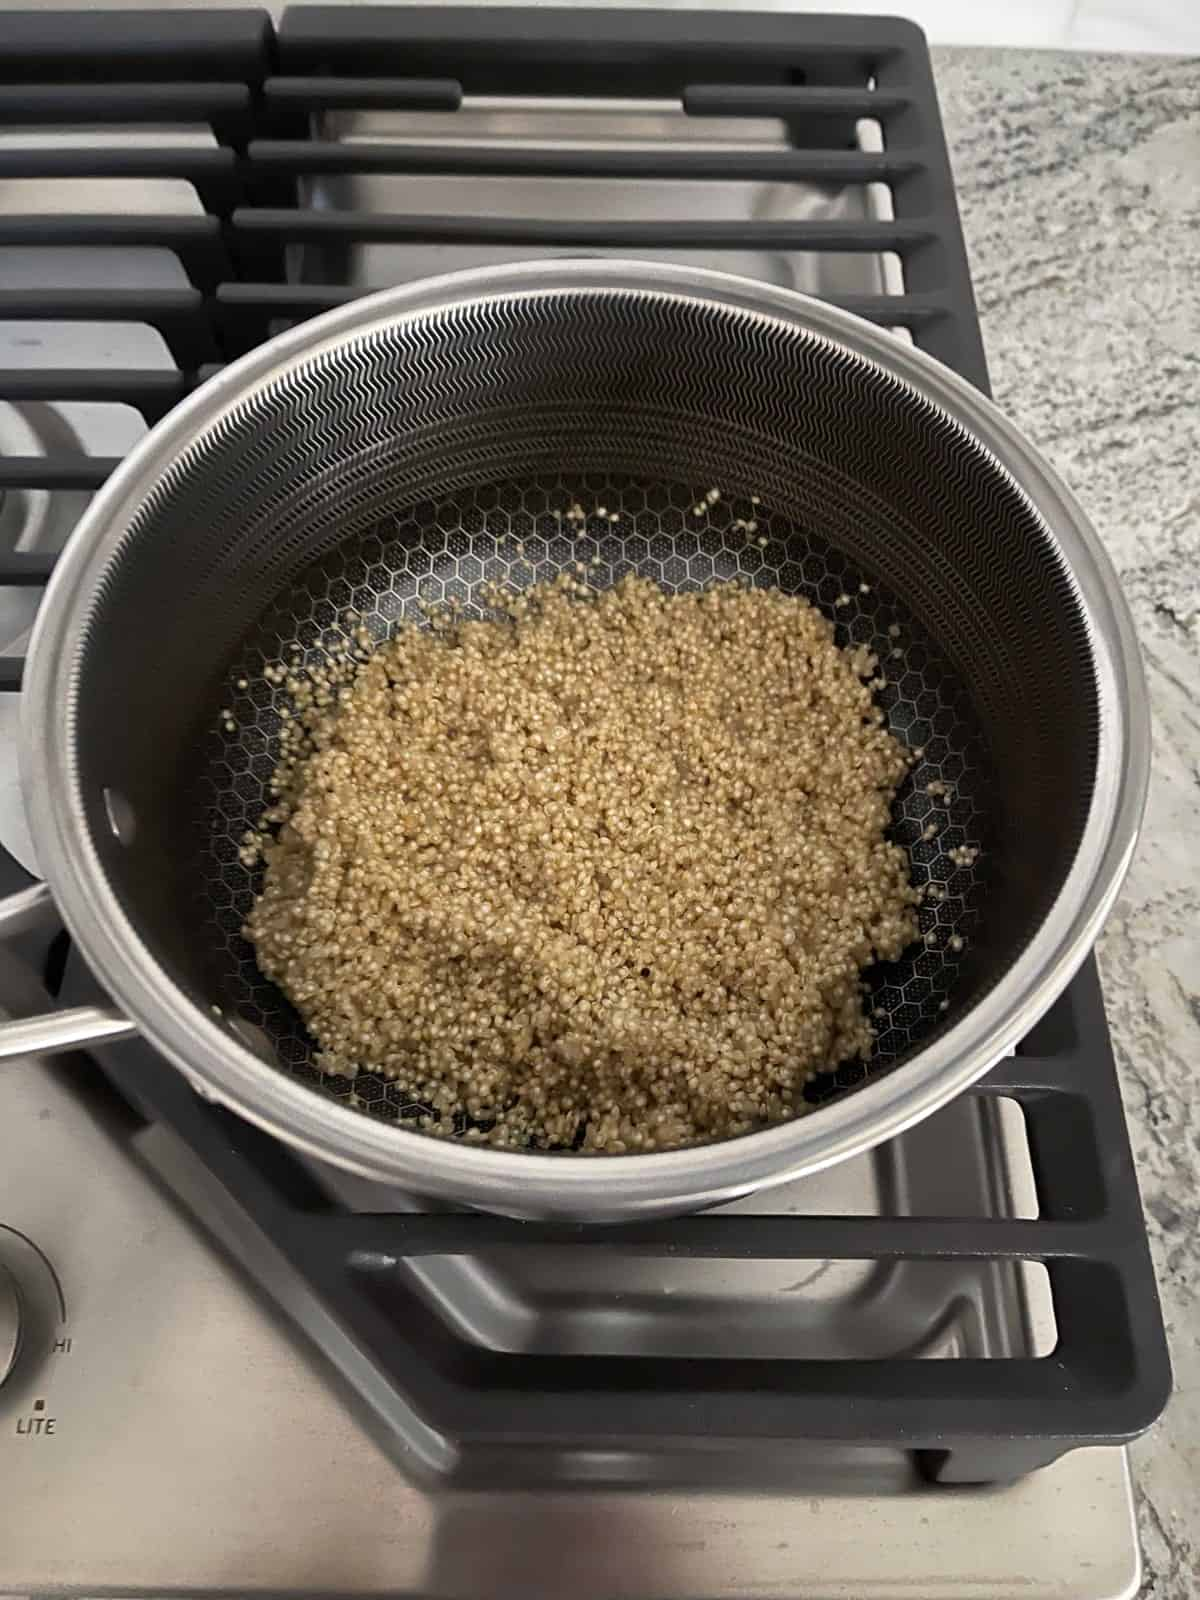 Cooking quinoa in saucepan on stovetop